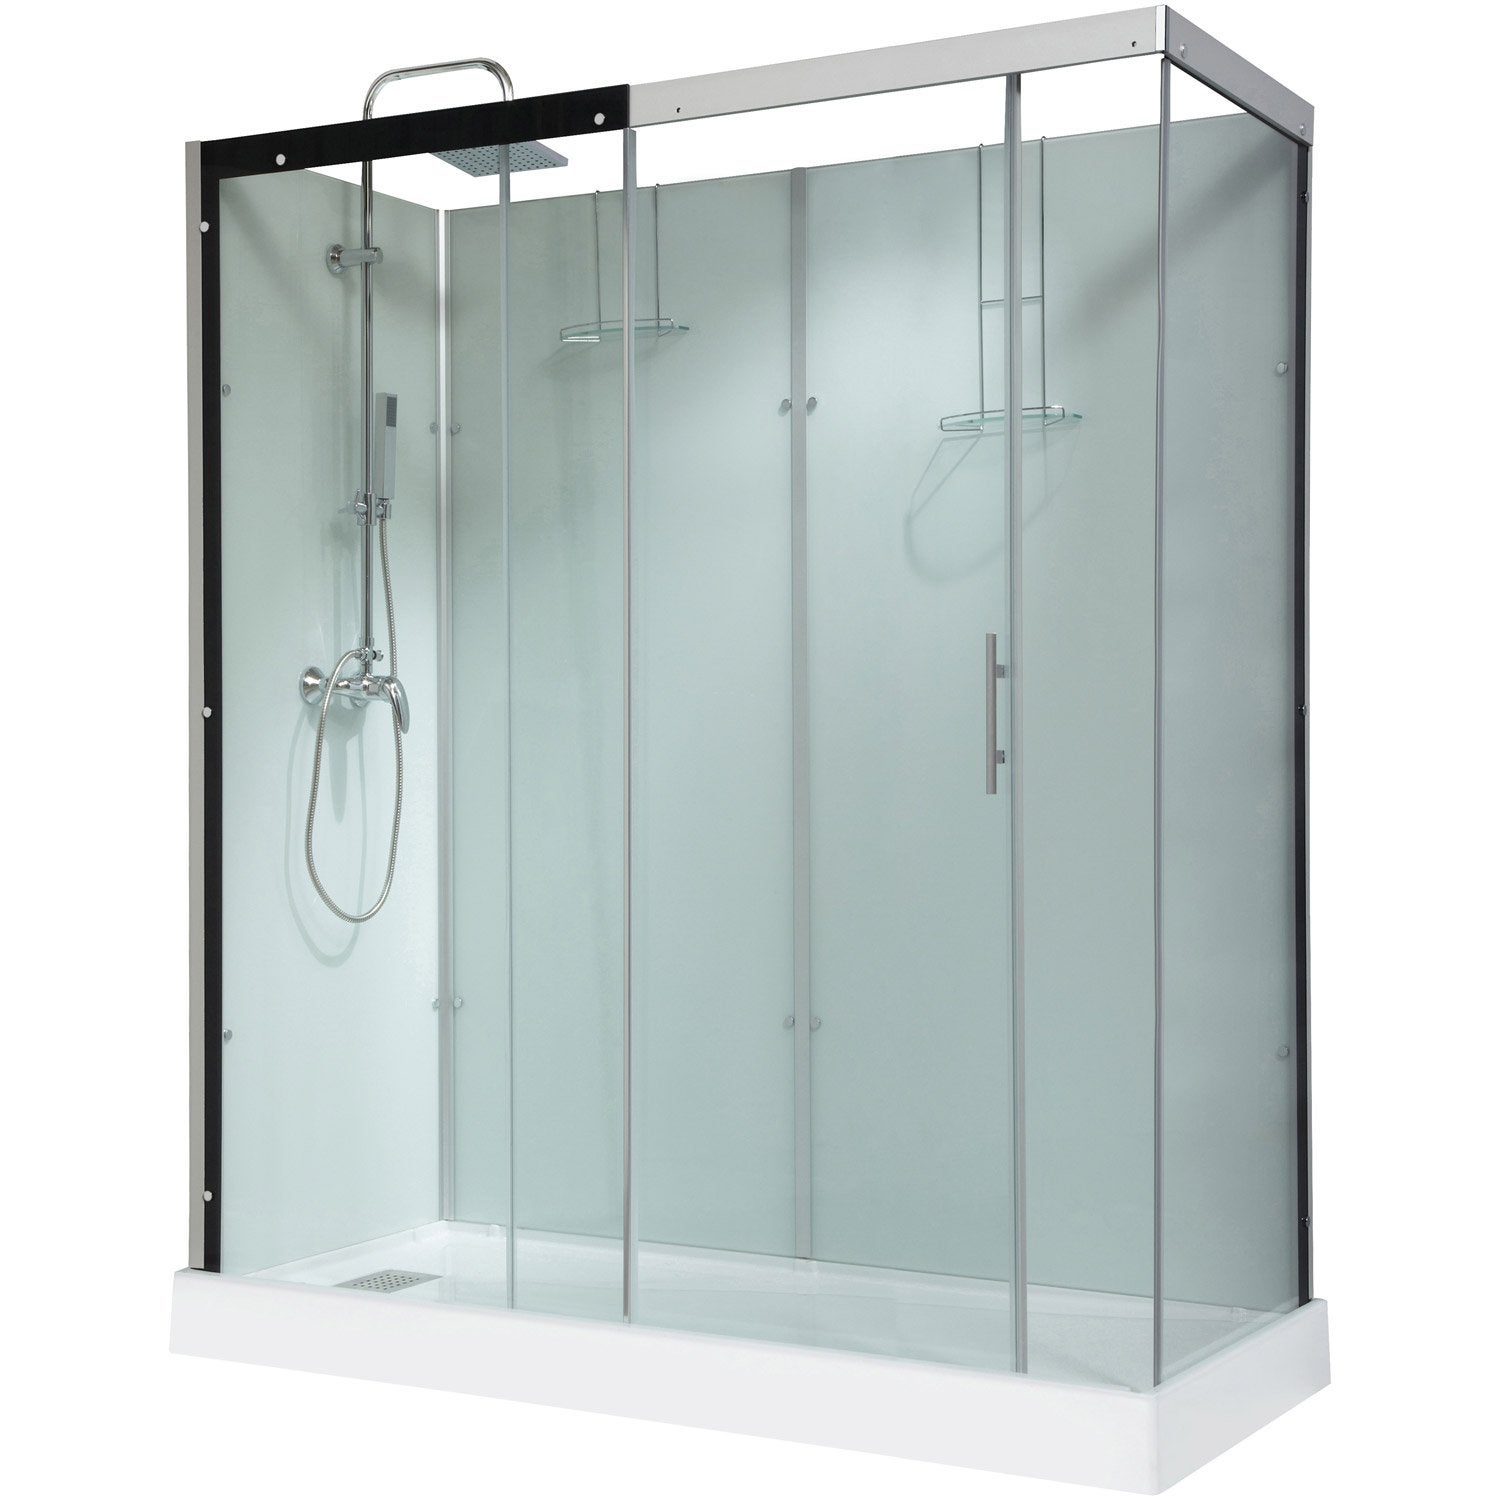 cabine de douche thalaglass 2 simple mitigeur rectangulaire 180x80 cm leroy merlin. Black Bedroom Furniture Sets. Home Design Ideas